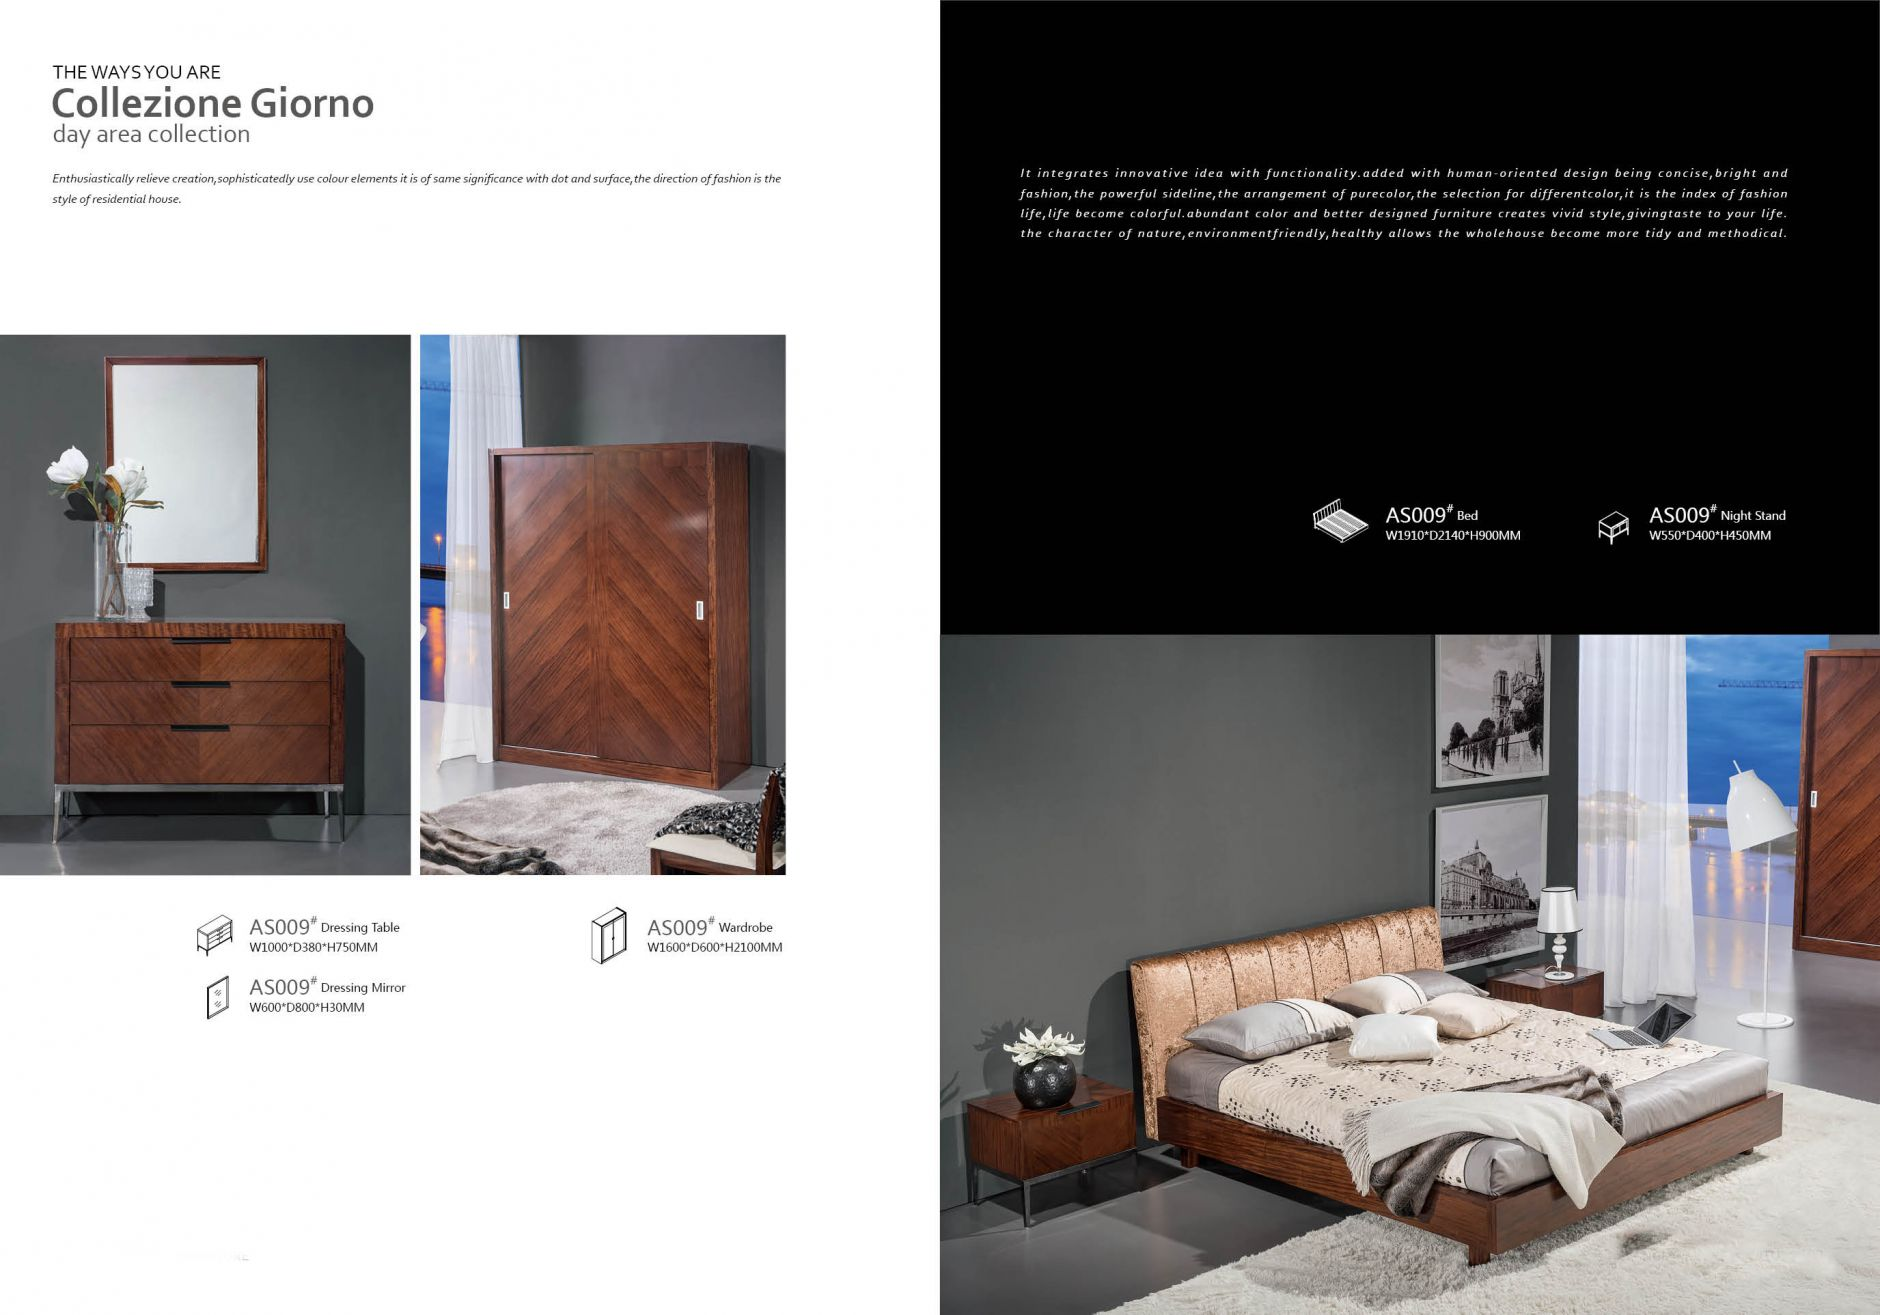 designer m bel schlafzimmer serie as009die m bel aus italien. Black Bedroom Furniture Sets. Home Design Ideas